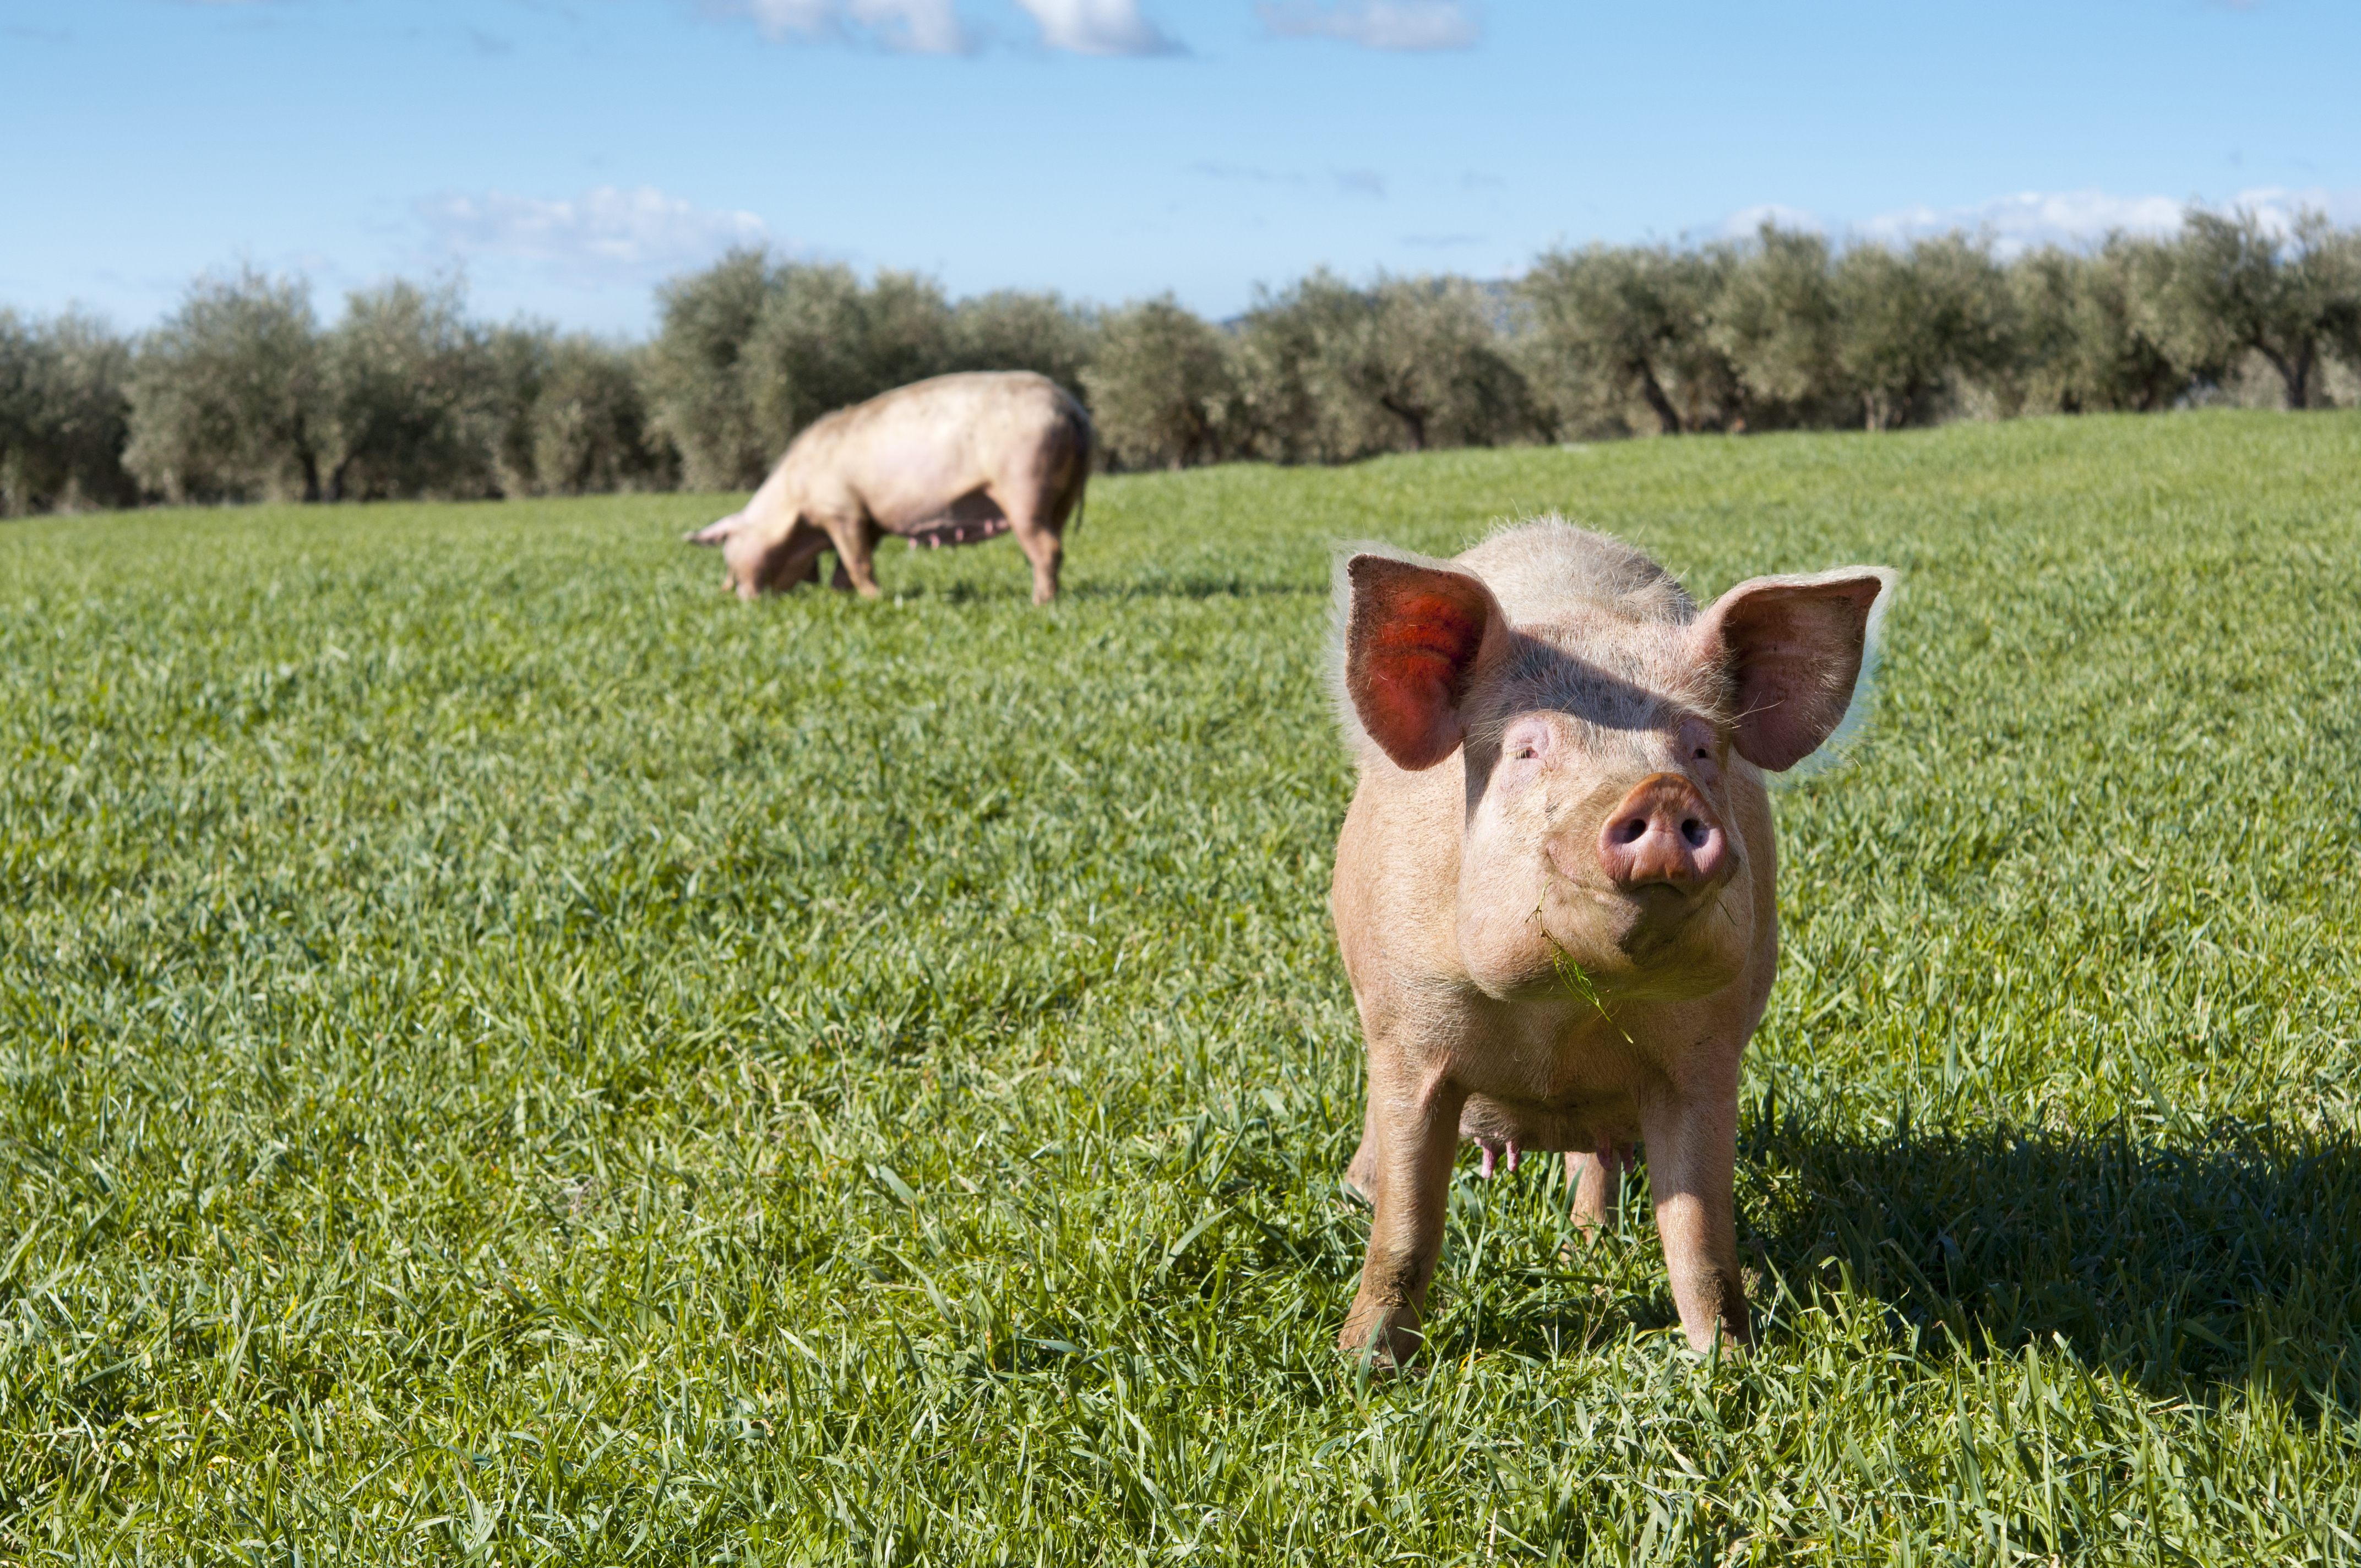 Two pig in a field